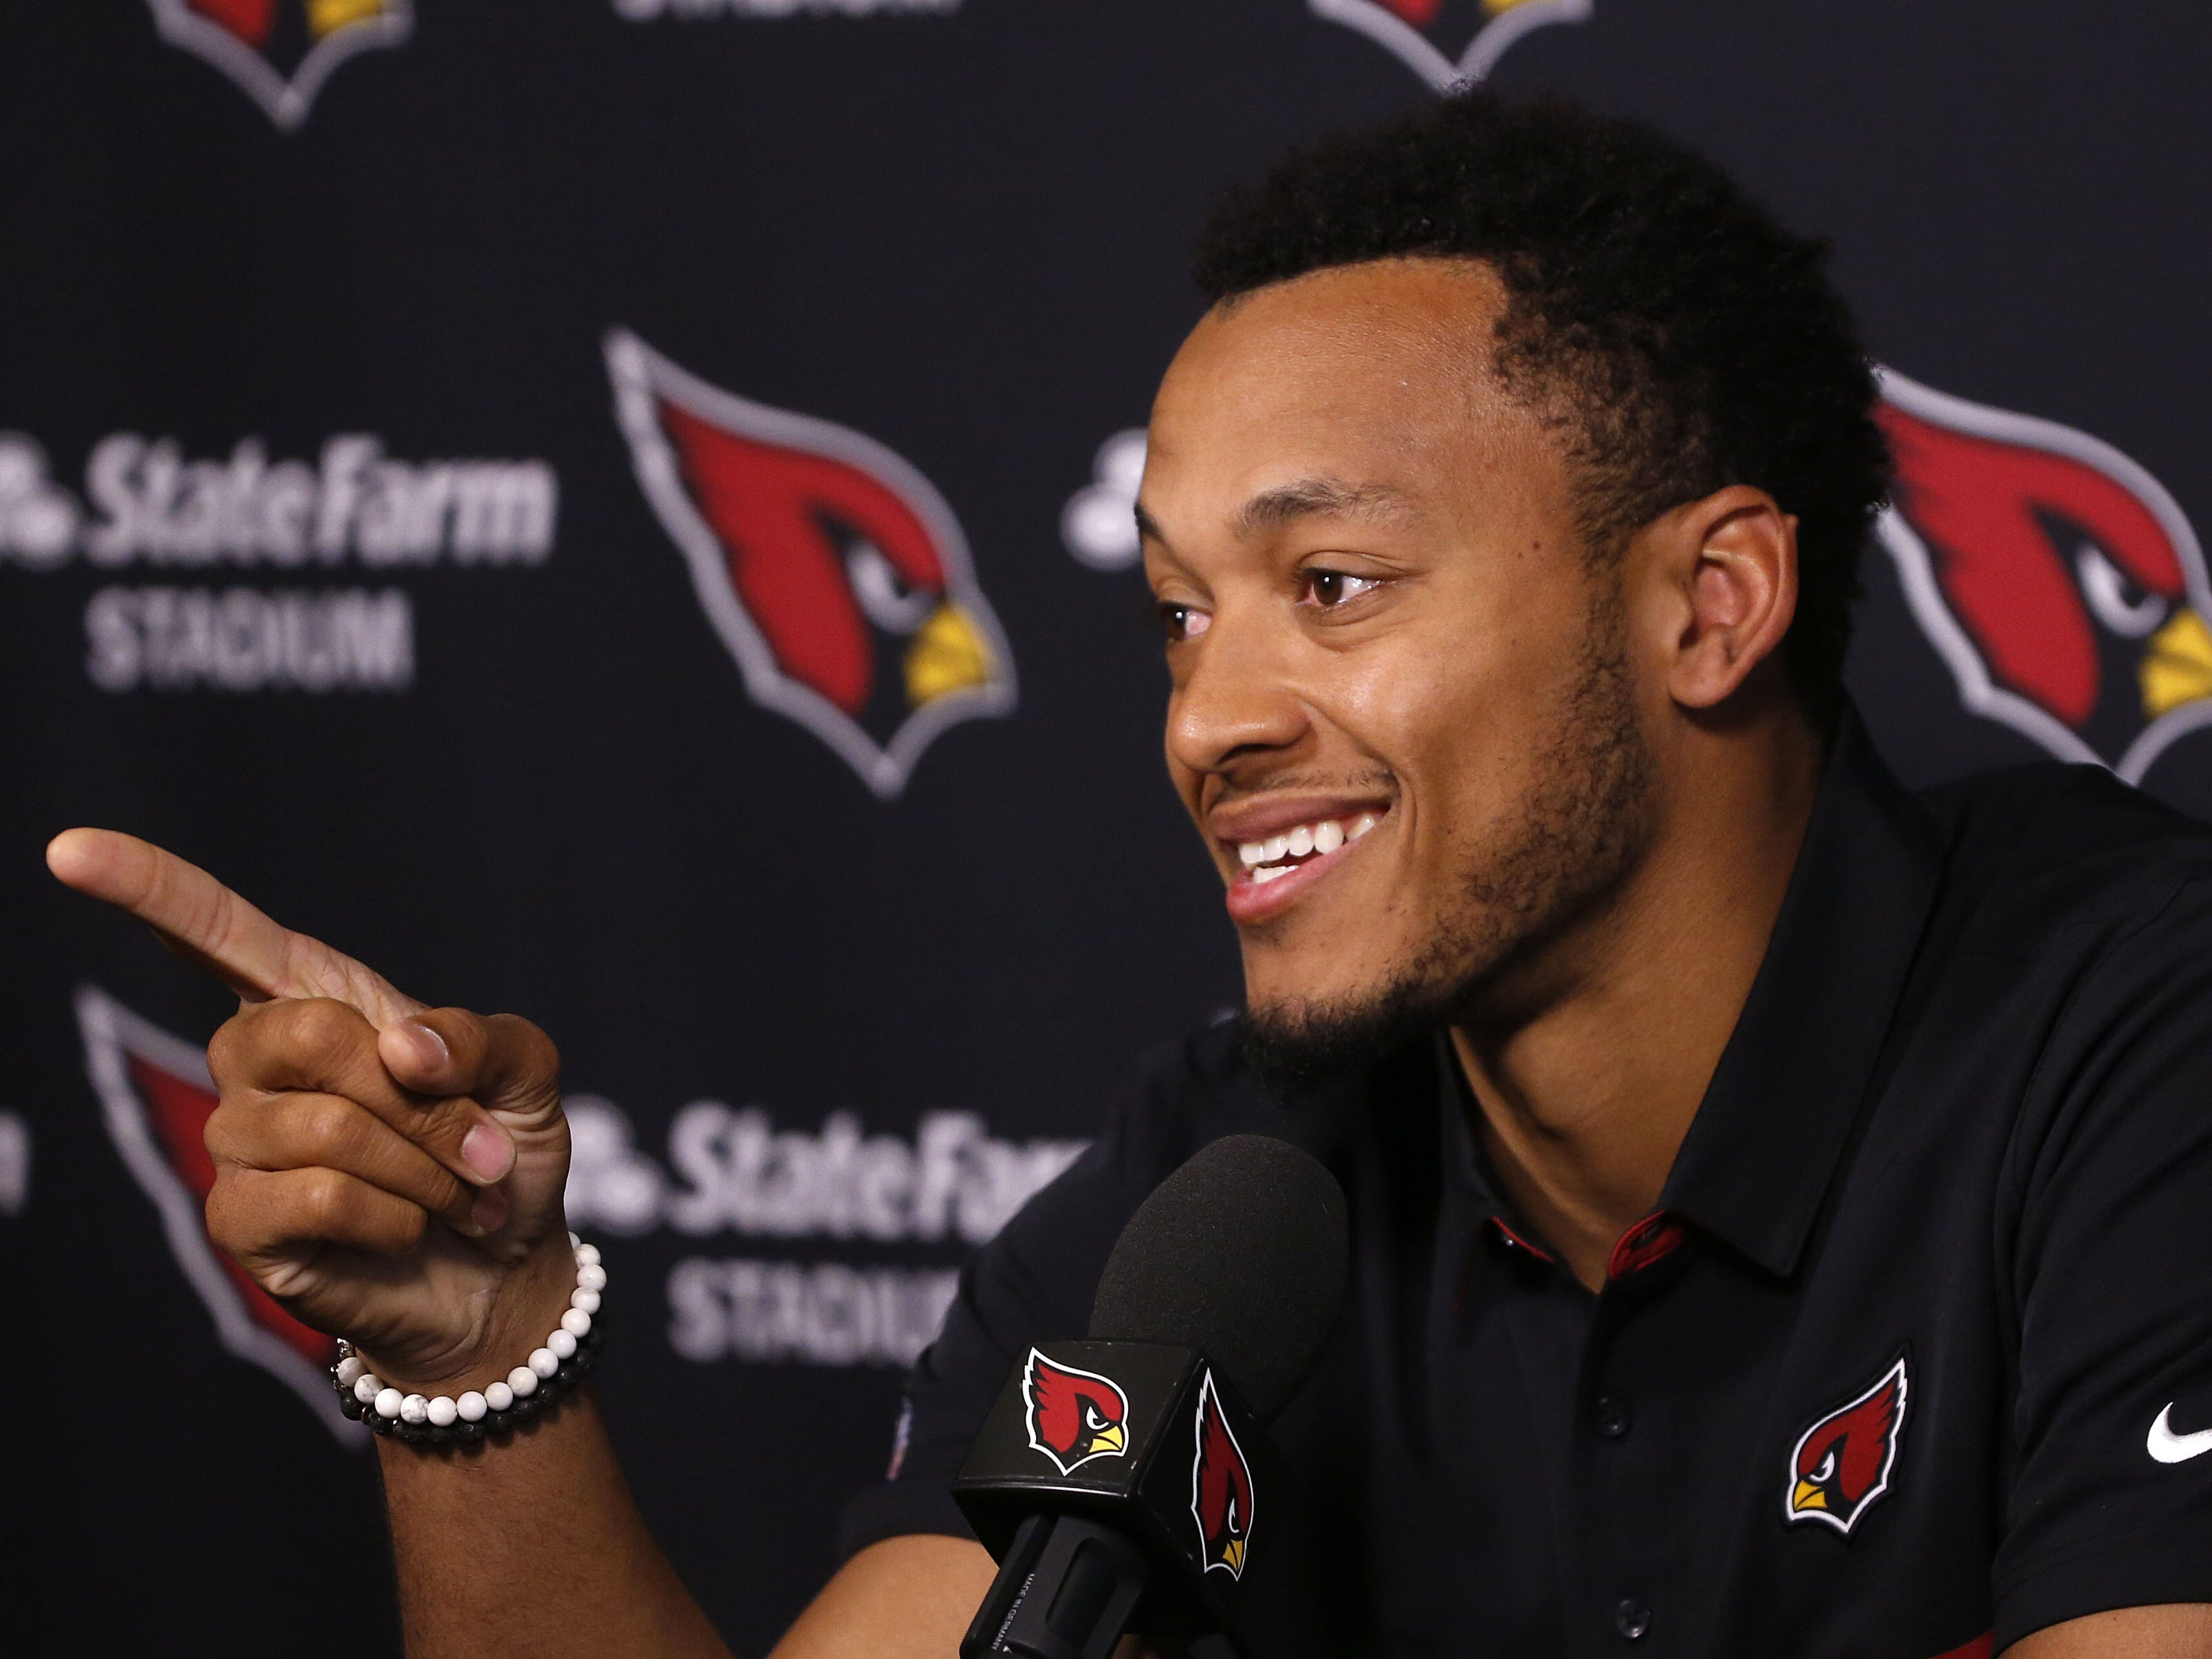 Brett Hundley talks about how his surprise for his parents was upended by the media's quick posting of his signing during his introductory press conference at the Arizona Cardinals Training Facility in Tempe, Ariz. on March 14, 2019.